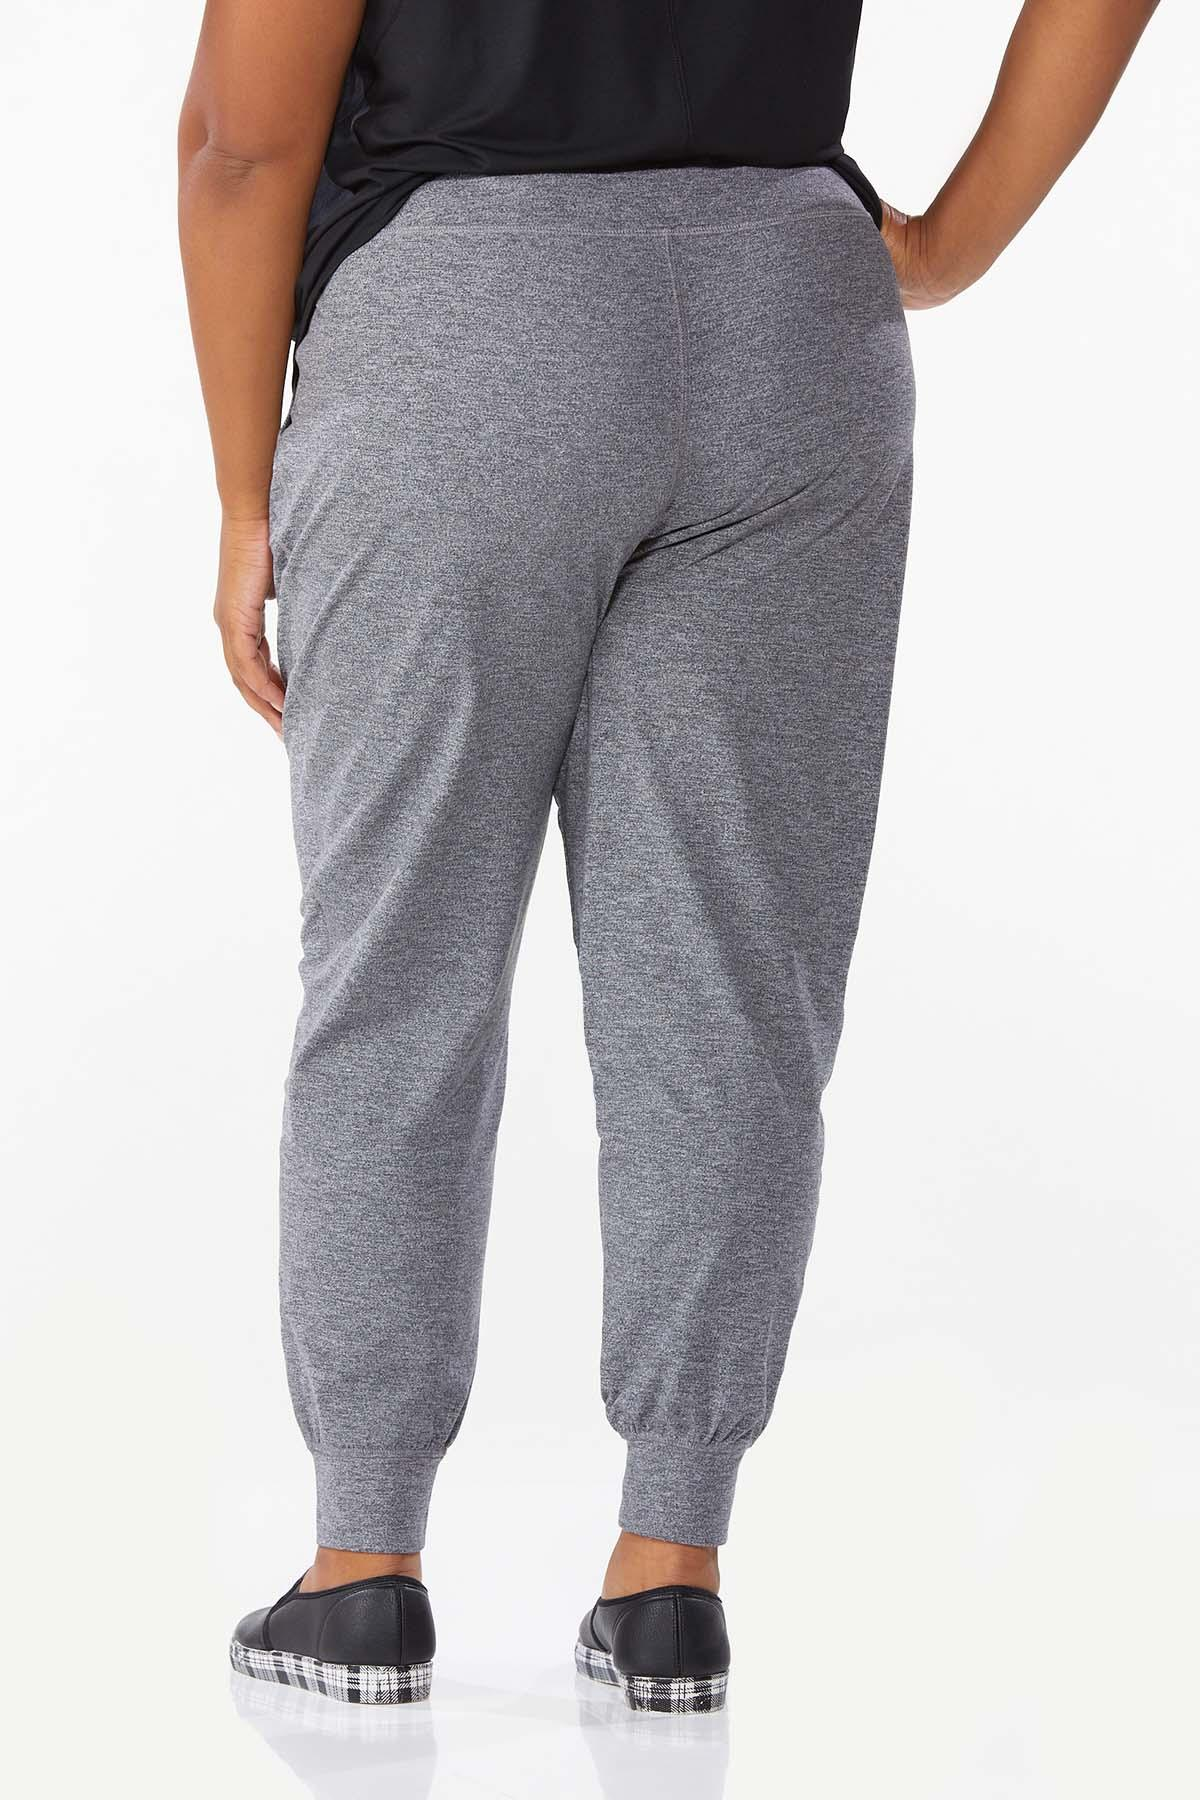 Plus Size Solid Stretch Joggers (Item #44668284)